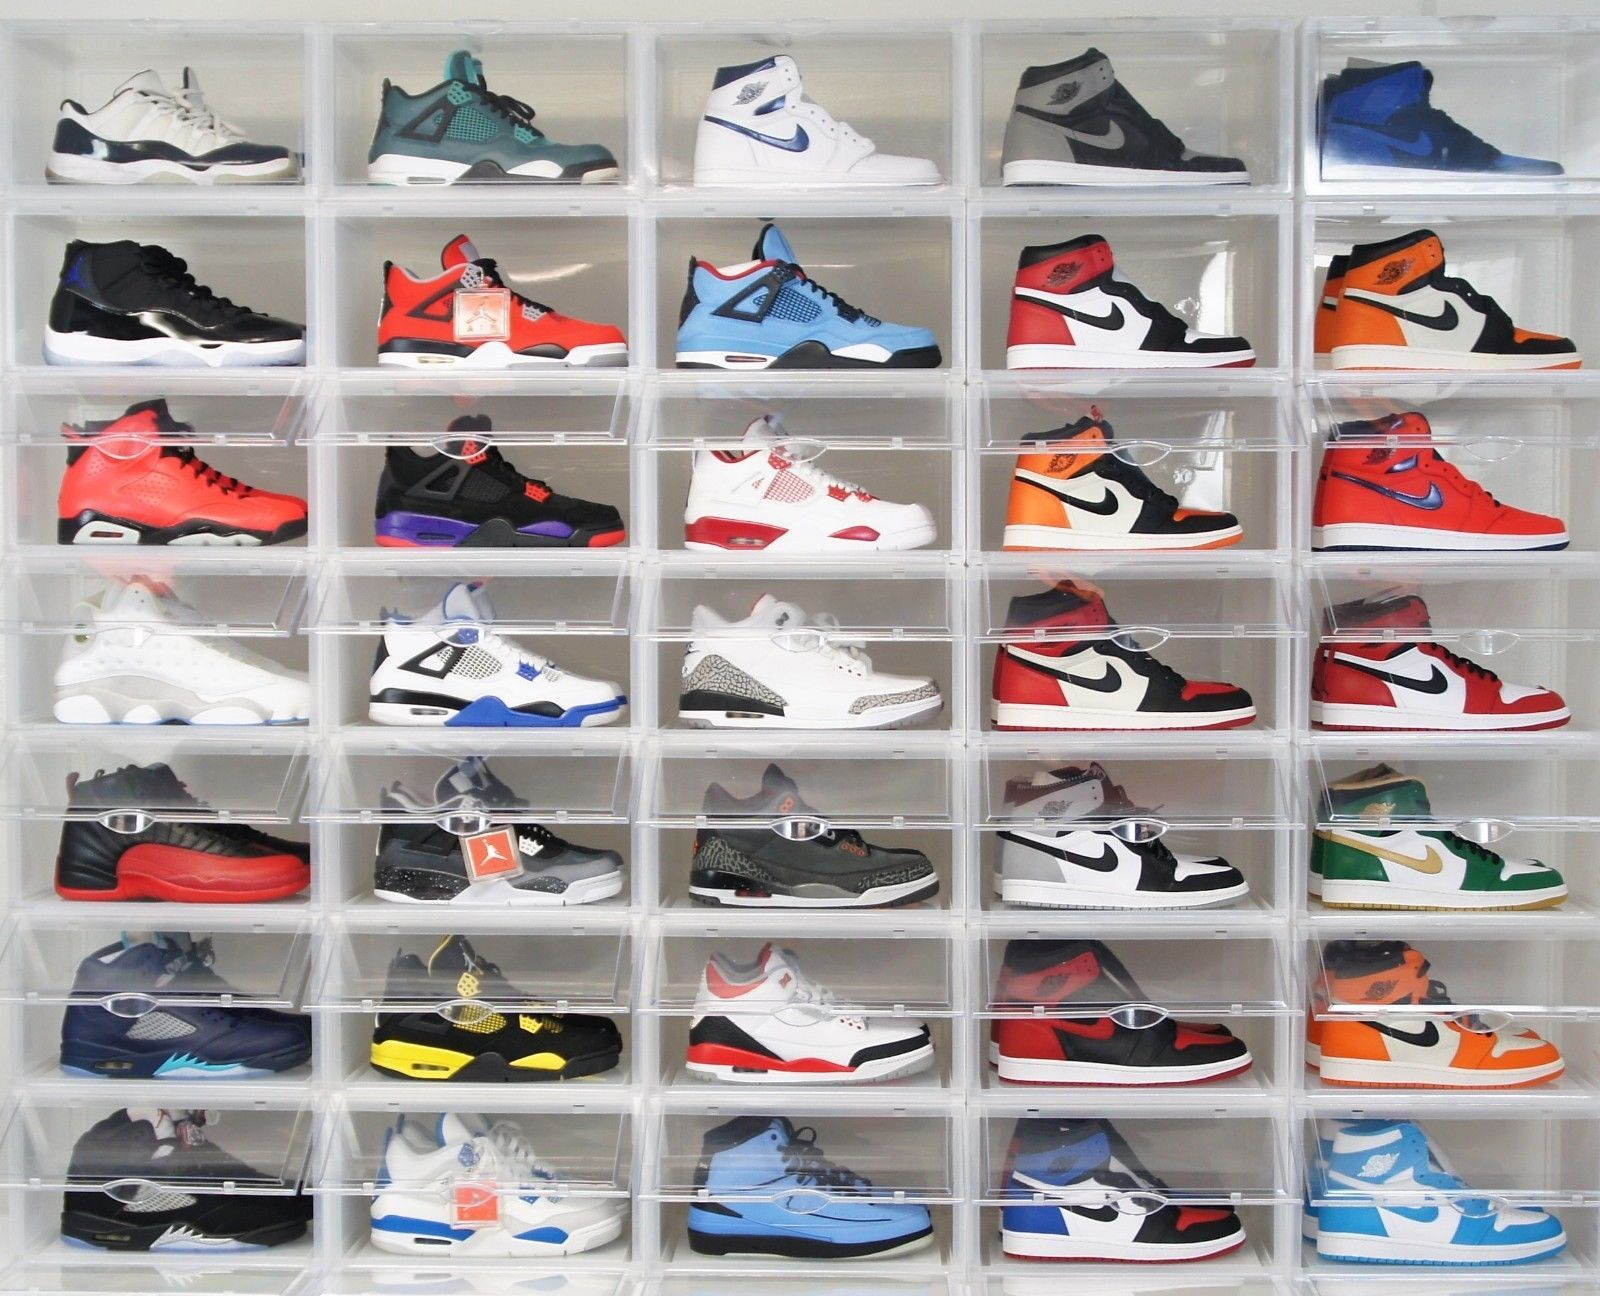 Shoe containers, Sneakers box, Sneaker rack